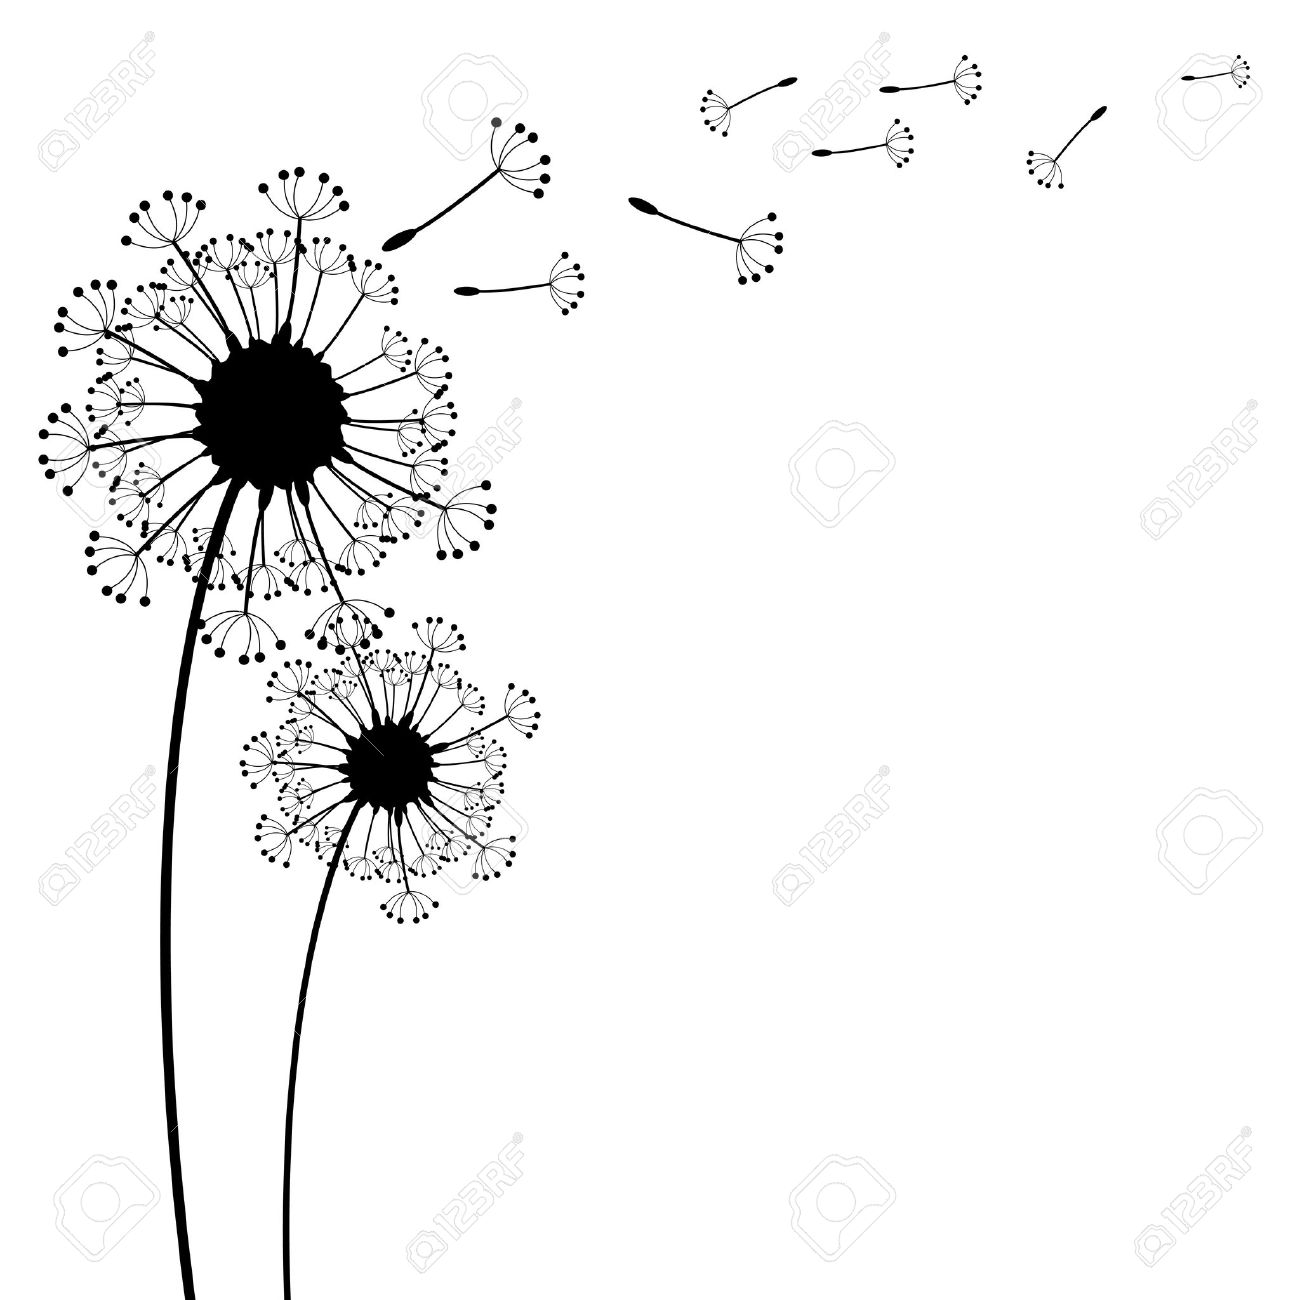 vector dandelion on a wind loses the integrity - 31835514